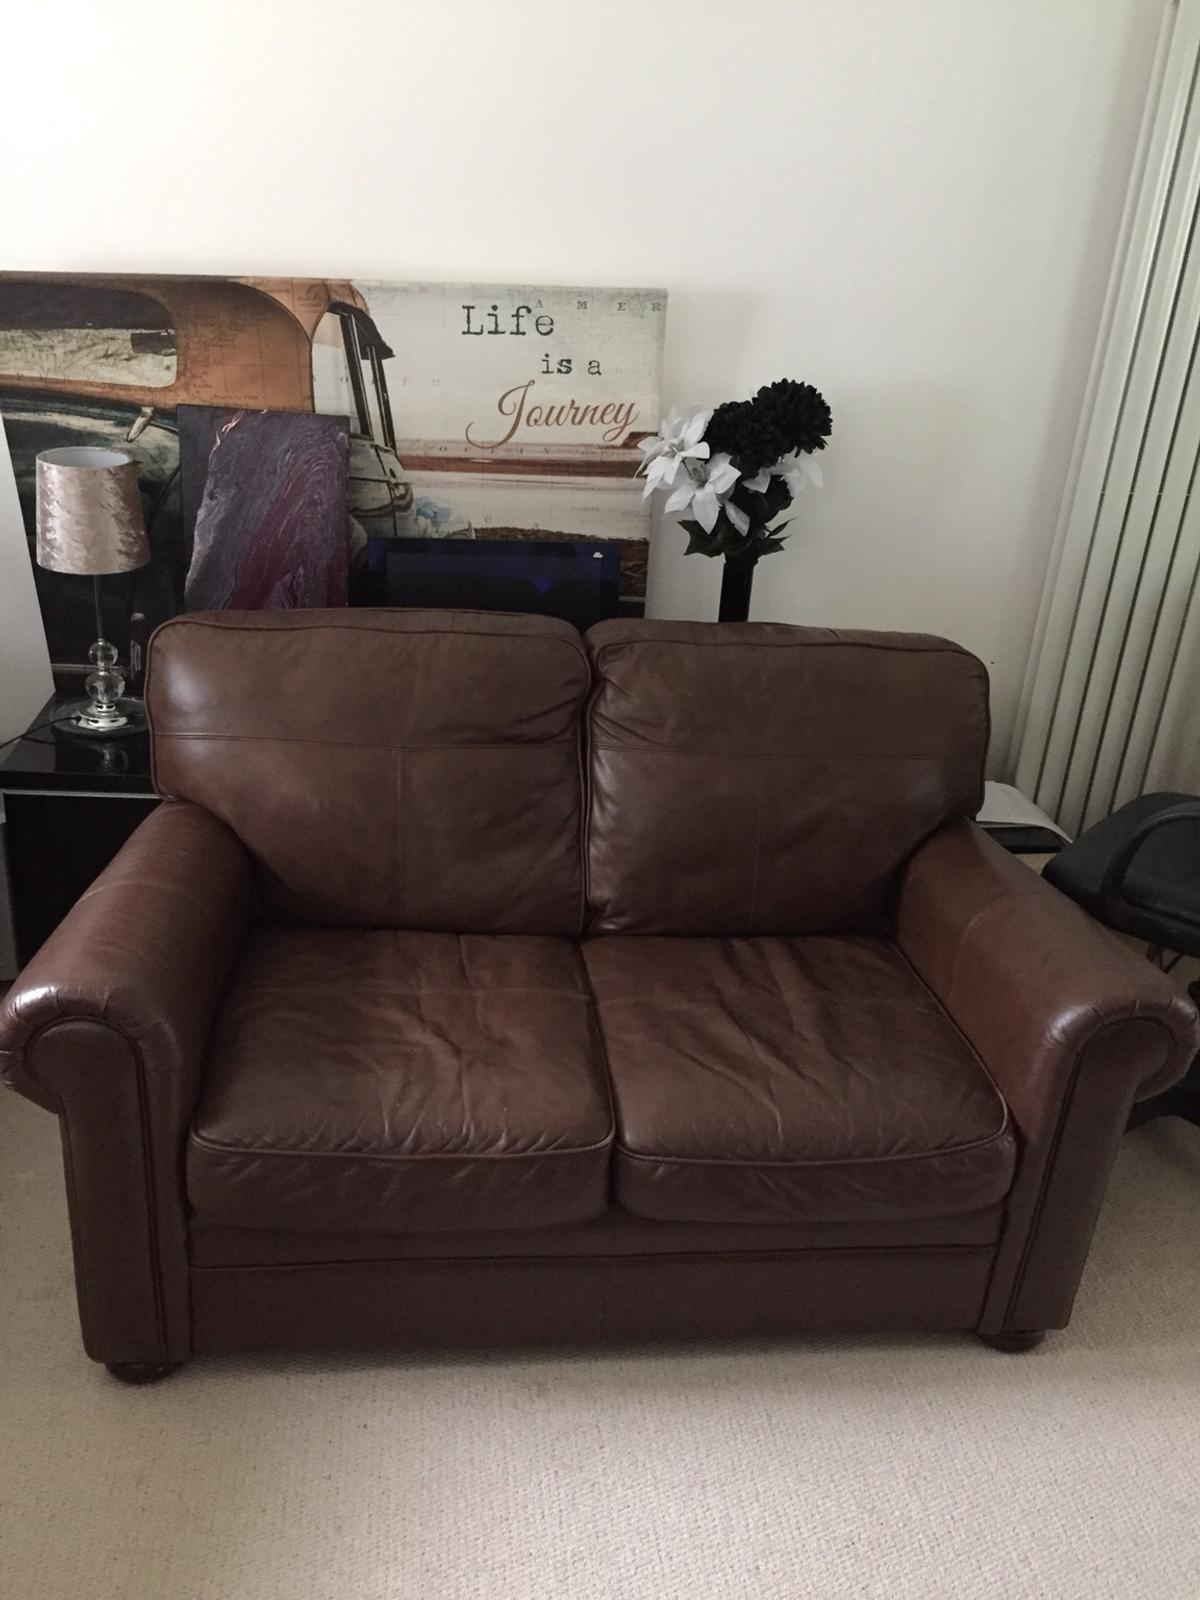 Picture of: 3 Seater Leather Sofa Bed Matching 2 Seater In Rh10 Sussex For 250 00 For Sale Shpock